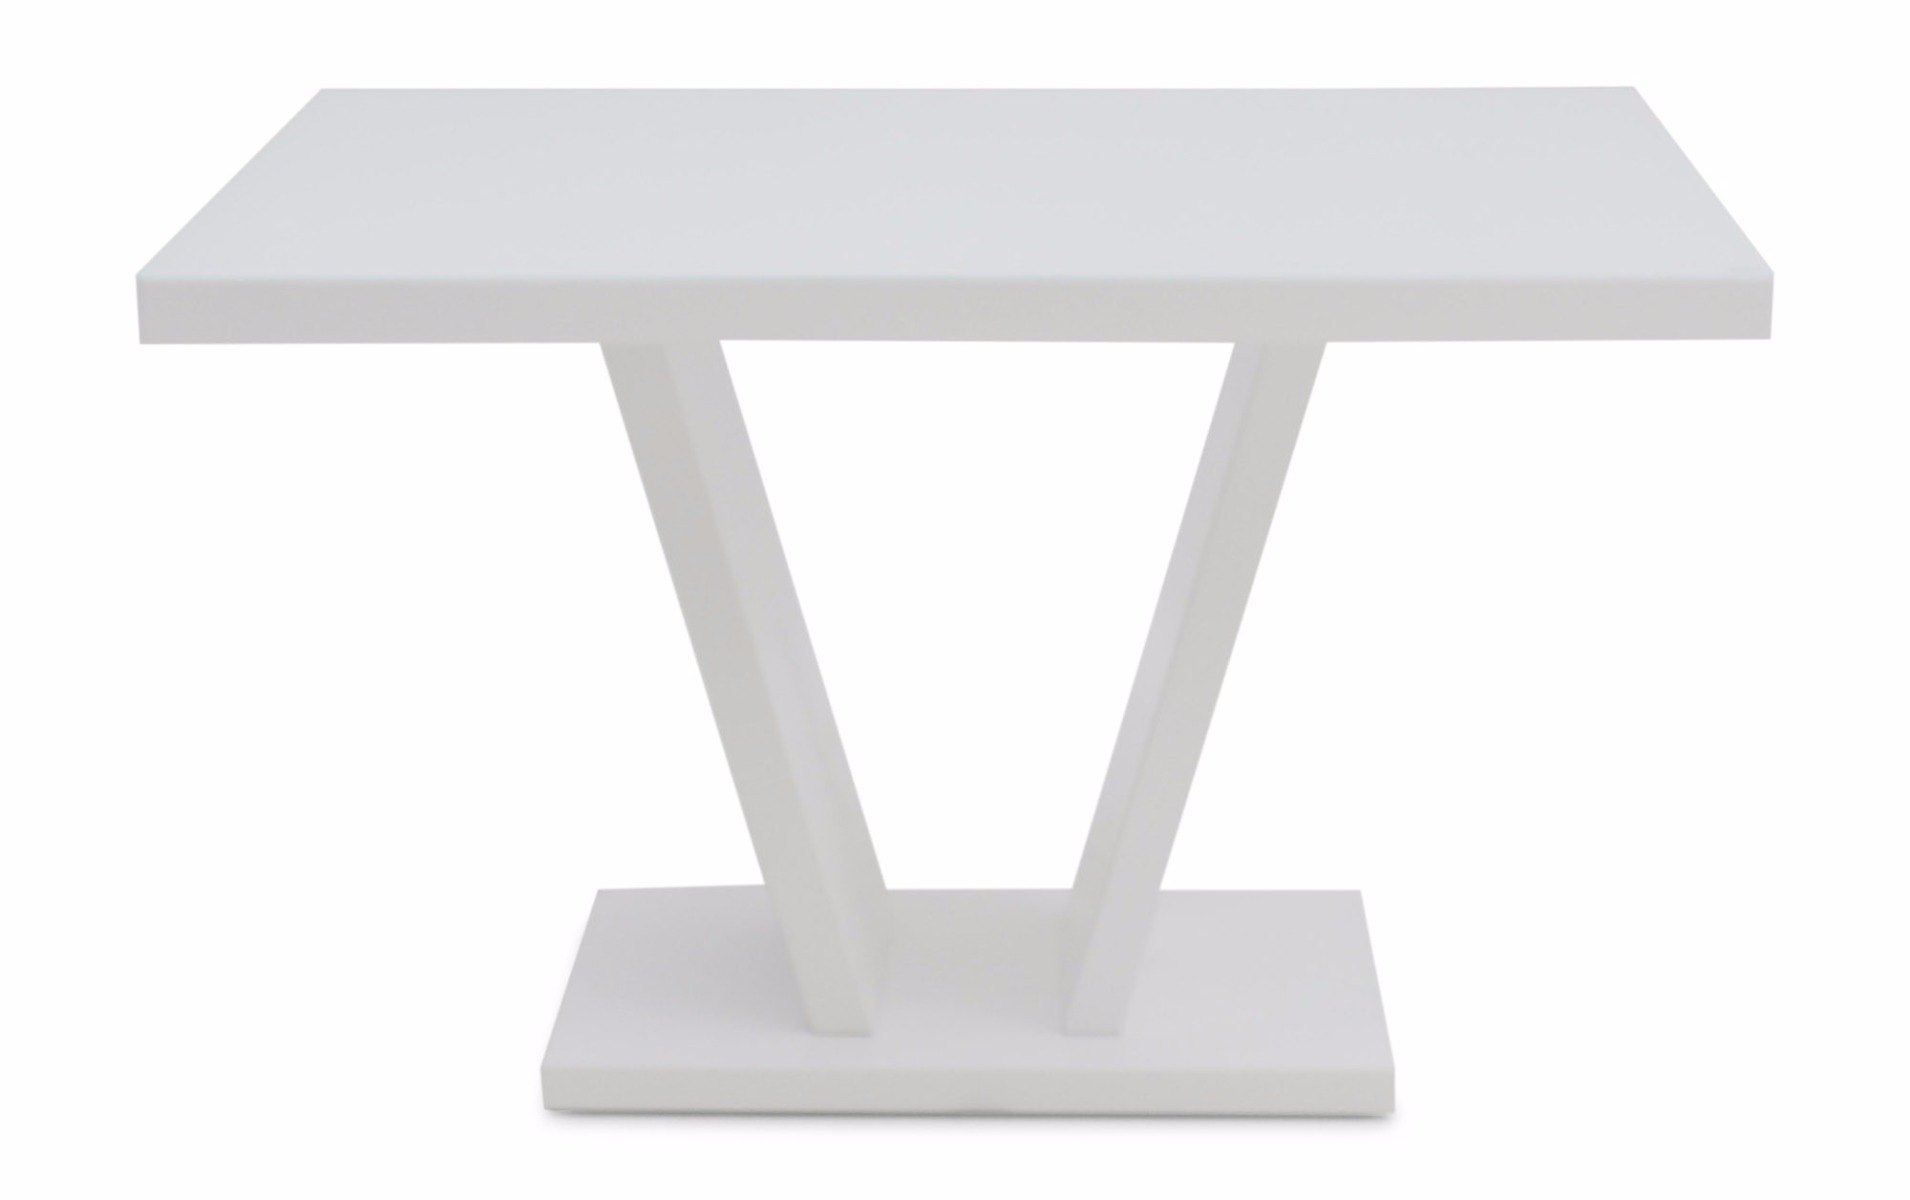 https://www.firstfurniture.co.uk/pub/media/catalog/product/f/a/fairmont_valentino_white_high_gloss_dining_table_1_5.jpg